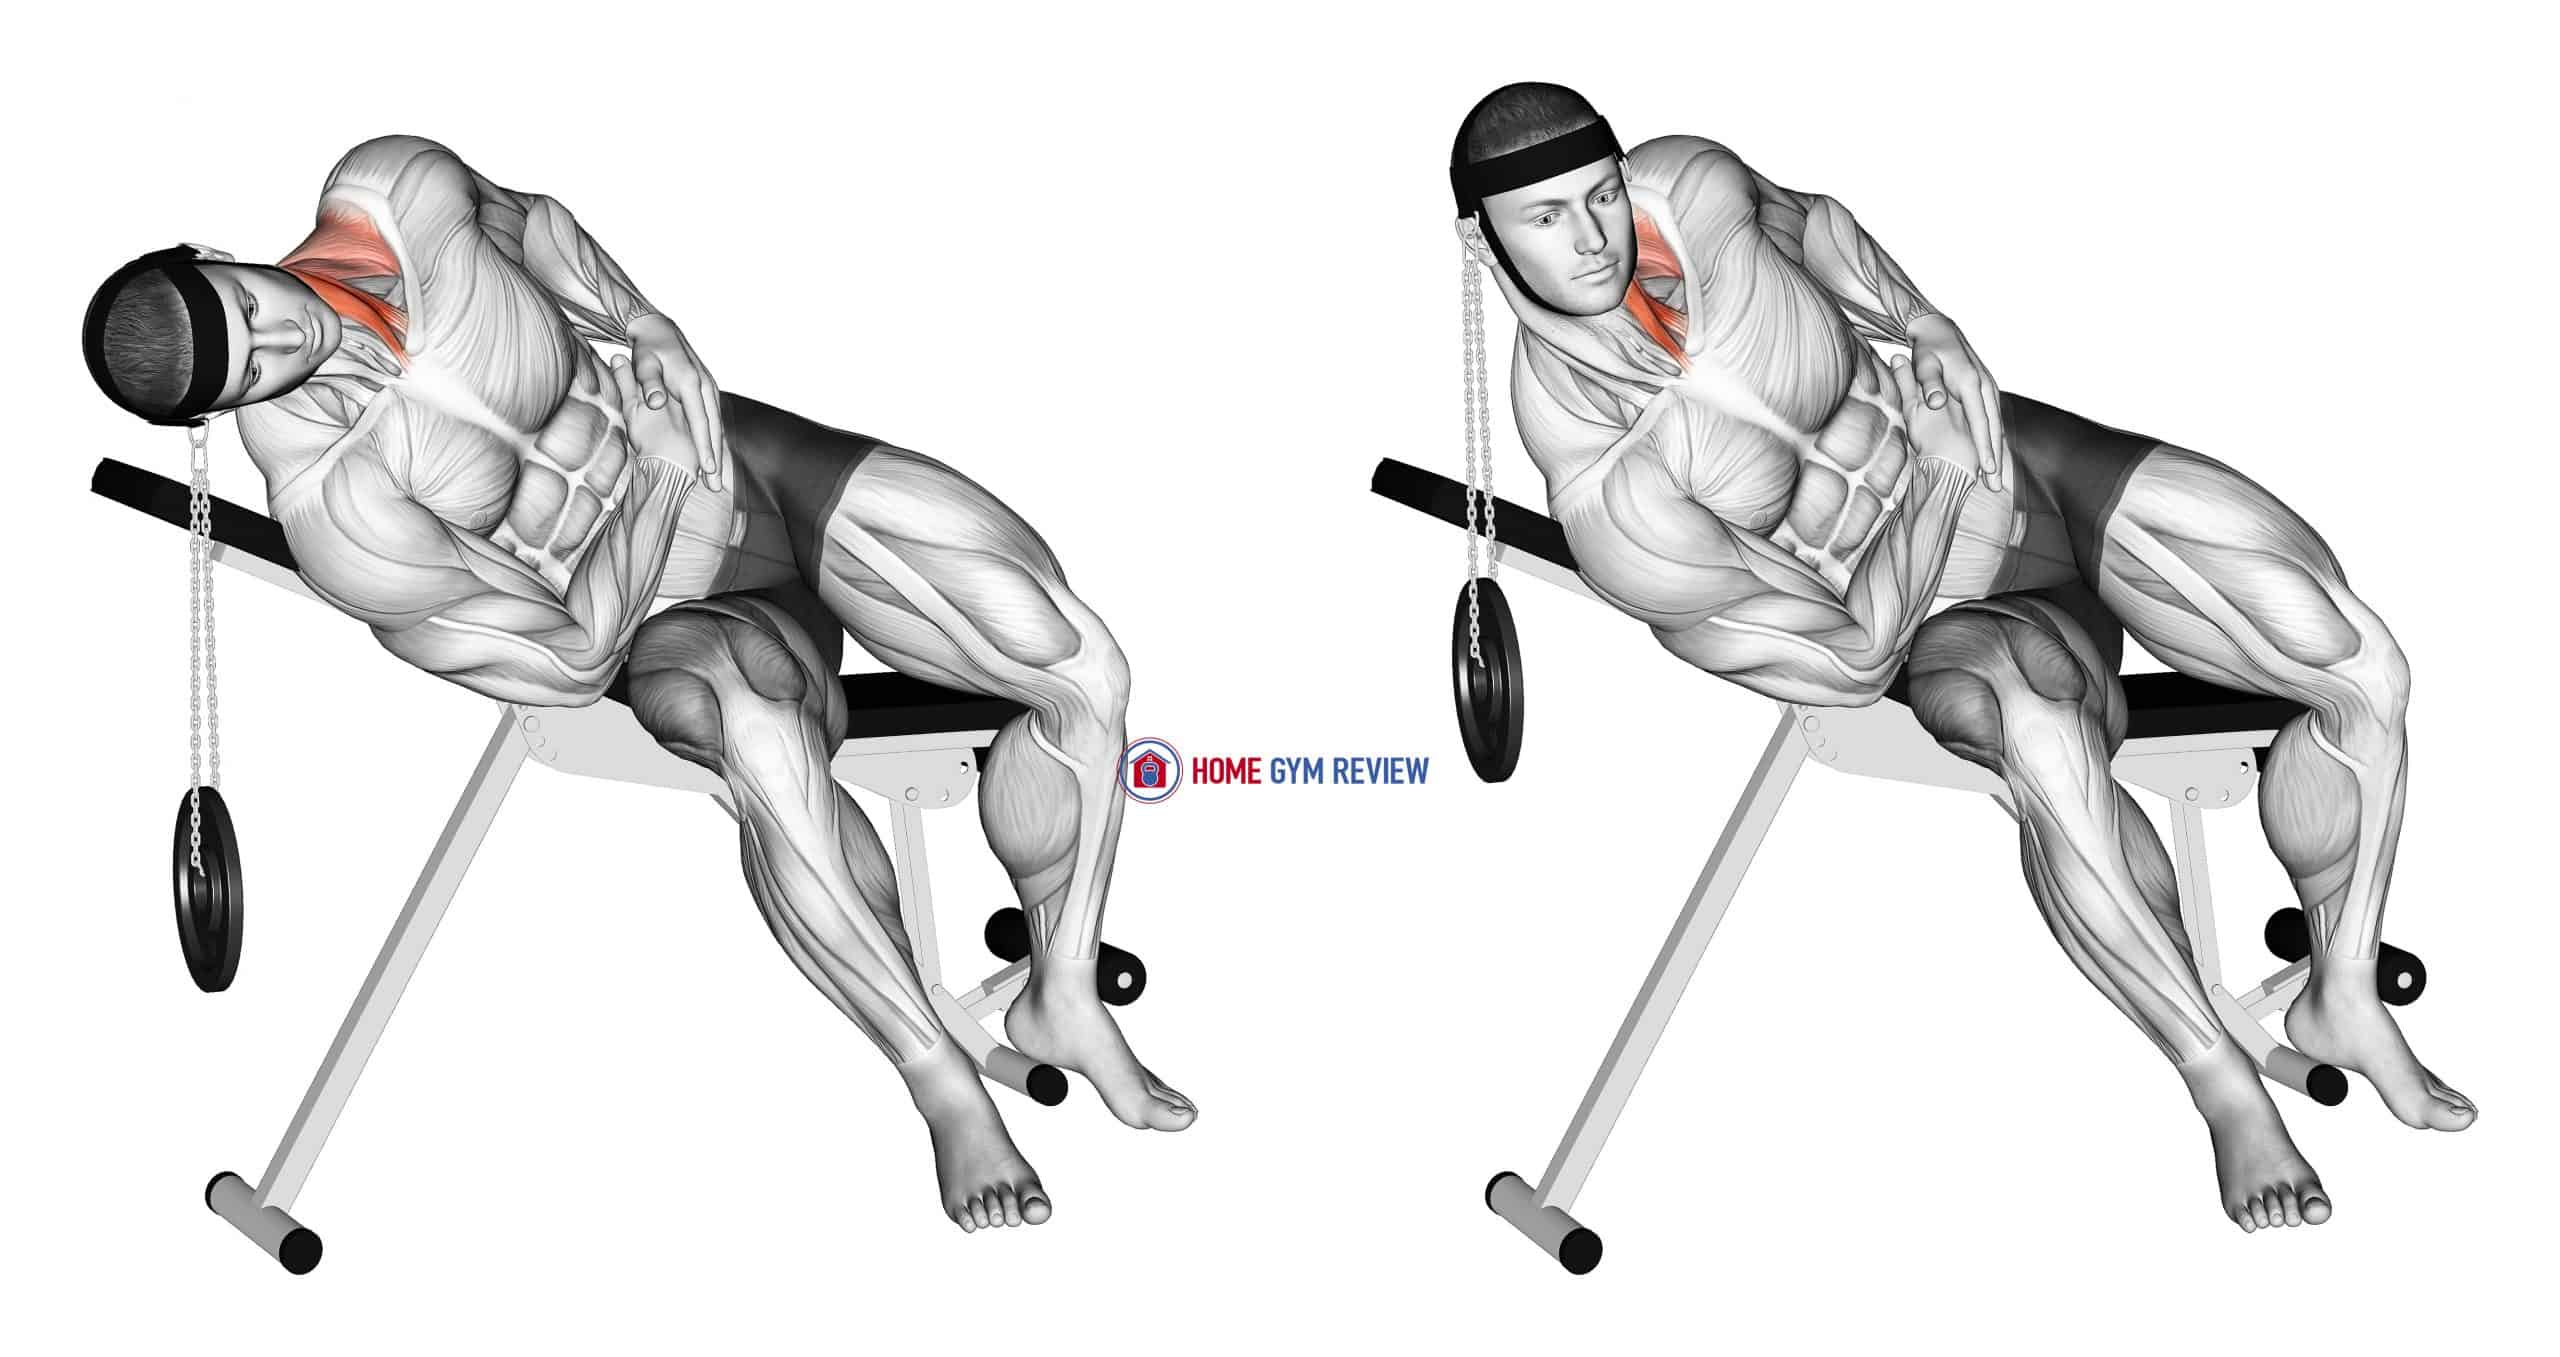 Weighted Lying Side Lifting Head (with head harness)